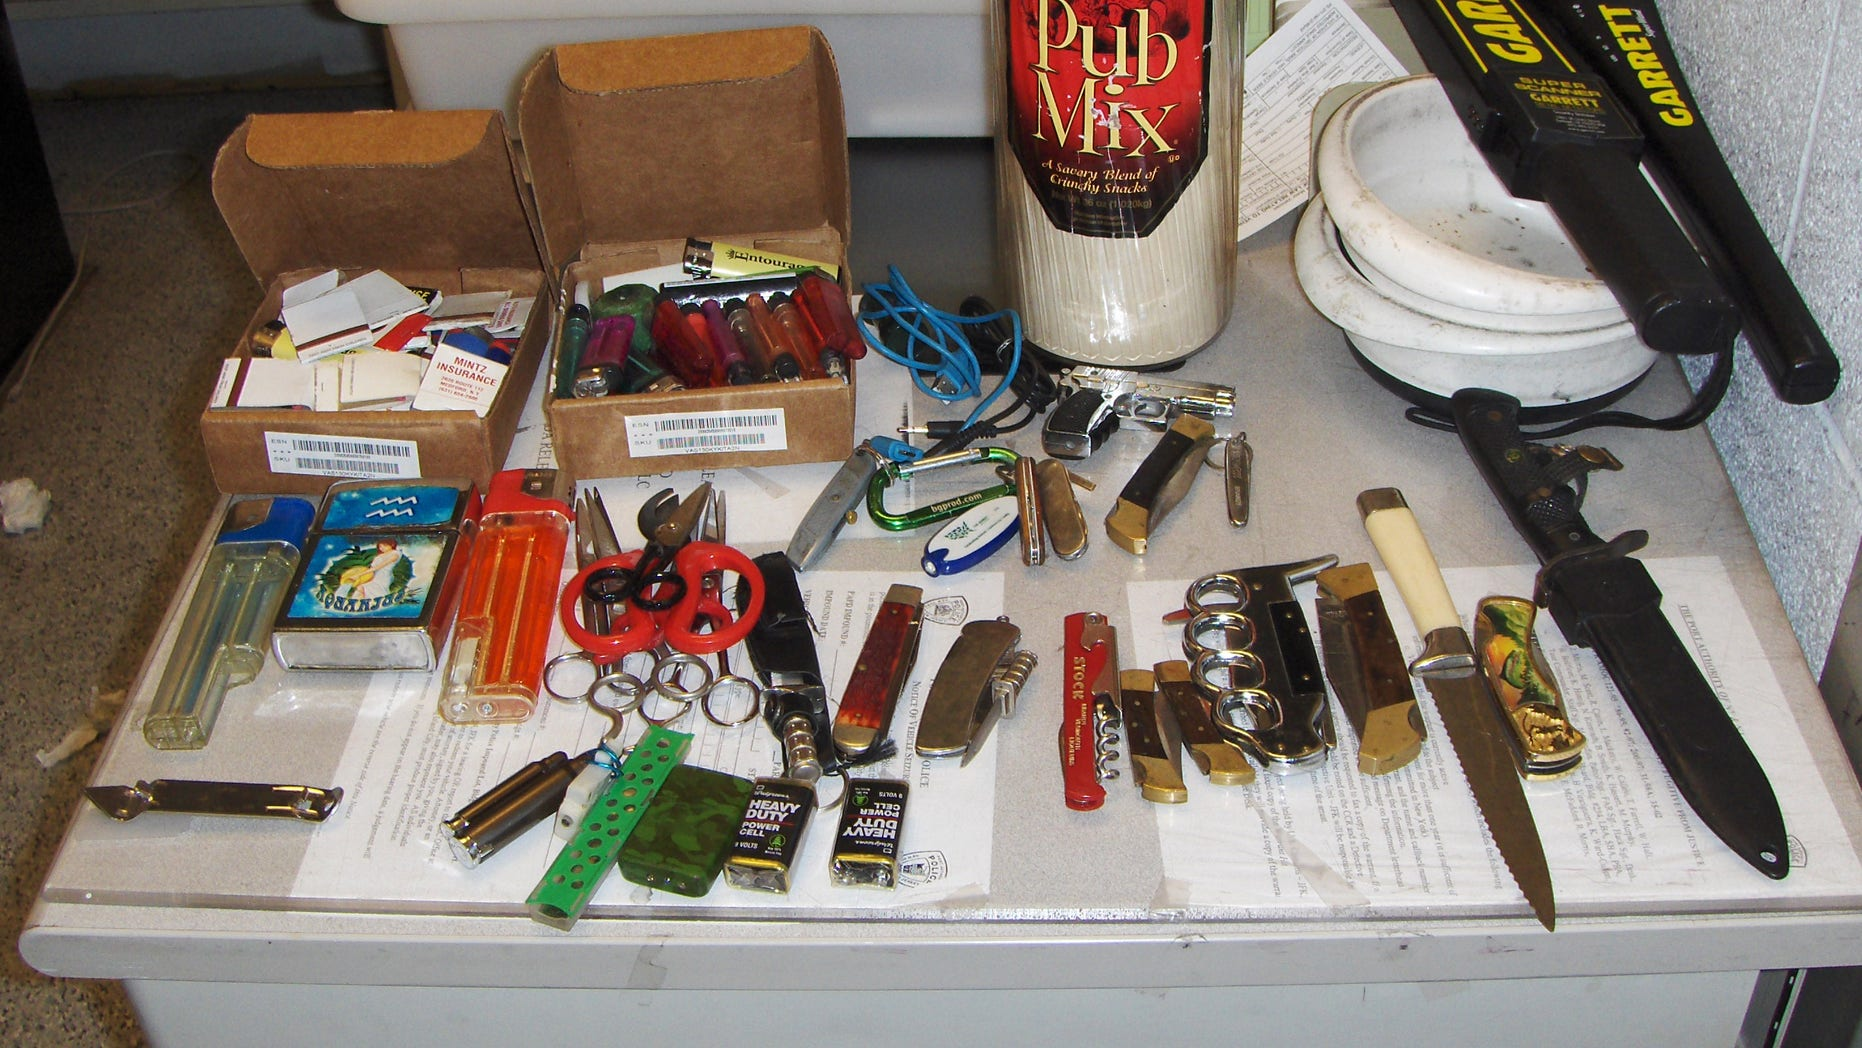 In this photo provided by the Police Department of the Port Authority of New York and New Jersey, a collection of large knives, cigarette lighters, scissors and matches fill a table at the Port Authority Police facility located in the John F. Kennedy International Airport in the Brooklyn Borough of New York, Saturday, Oct. 19, 2013. The items were sized after an airport baggage screener noticed the items in a person's carry-on bag. The Port Authority Police arrested Timothy Schiavo, Jr., 29, Patchogue NY and charged him with criminal possession of a weapon. (AP Photo/Port Authority Police Department of New York and New Jersey)